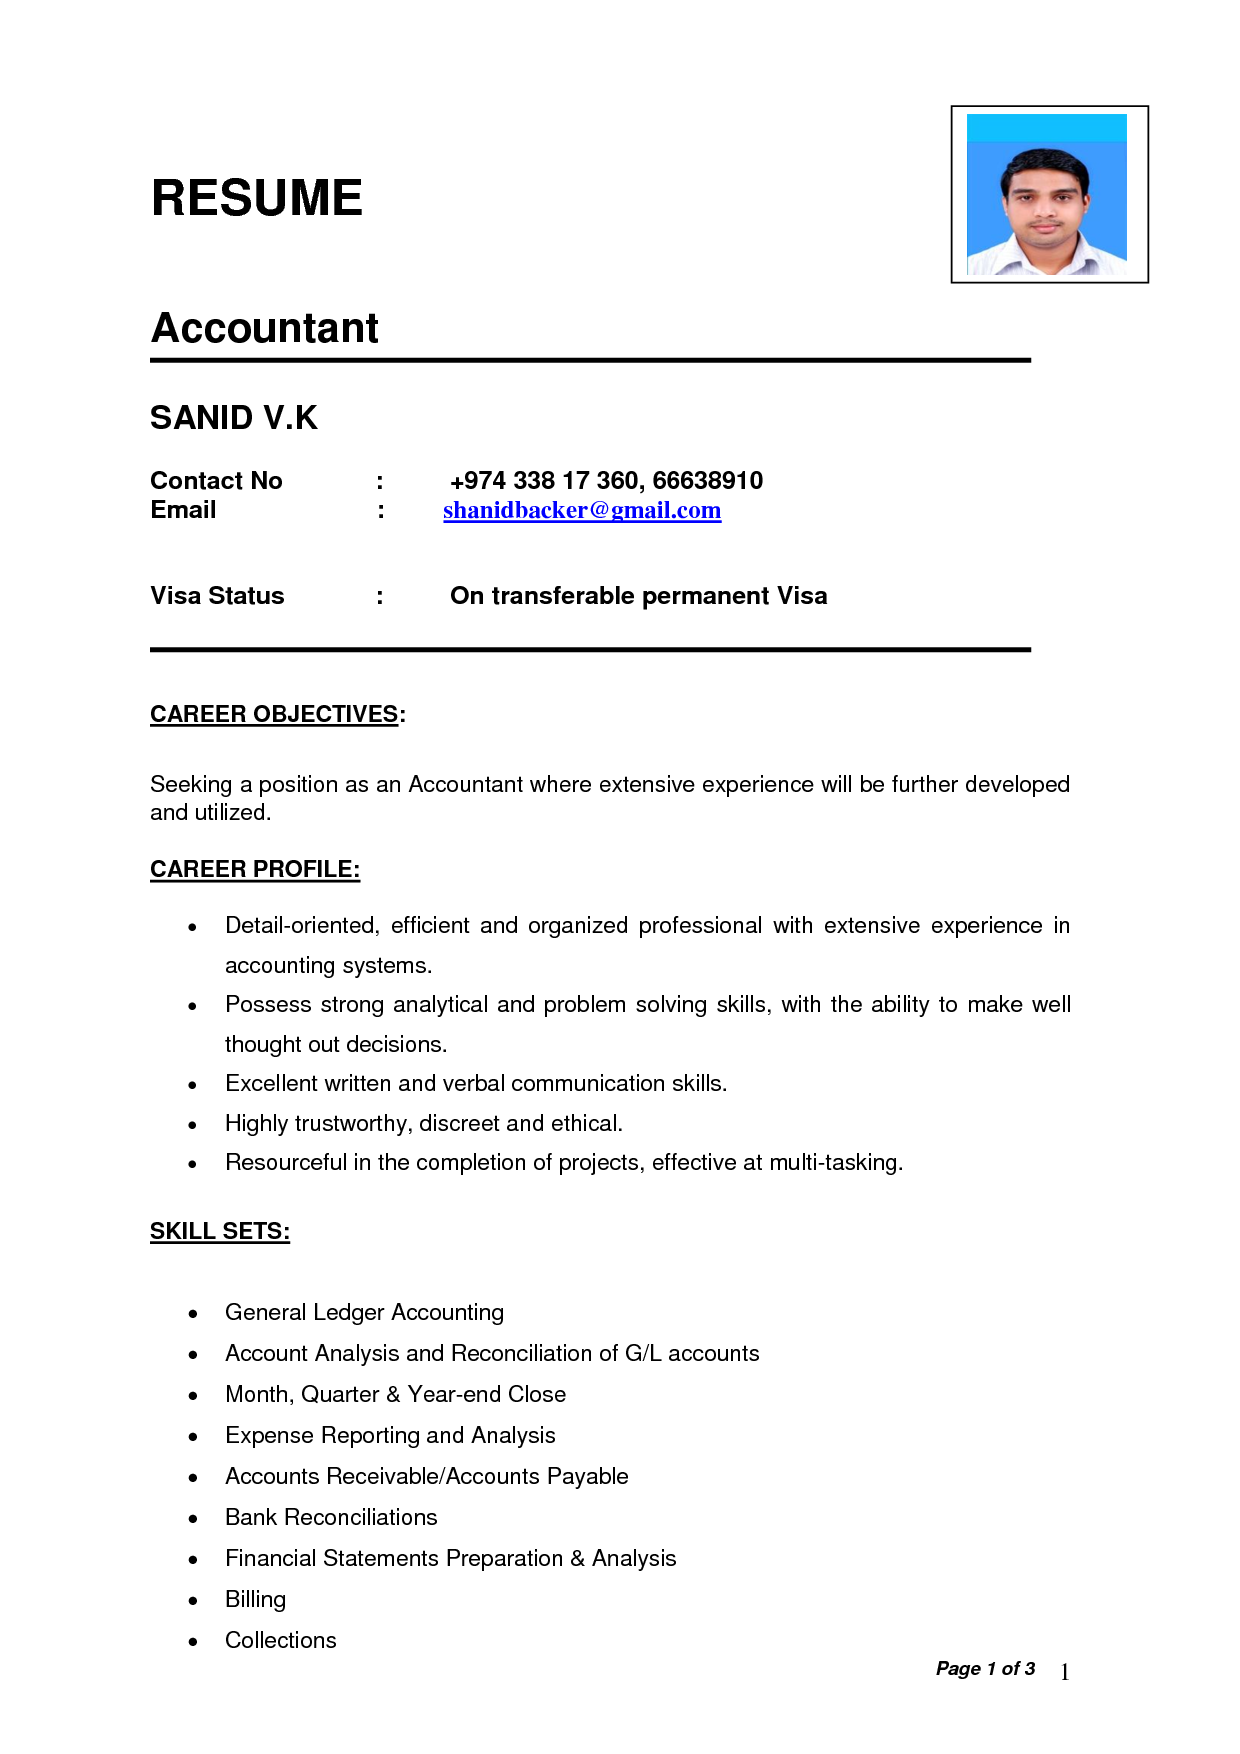 5a6b1ce73277413b71fc3e9331b2bd2e Simple Resume Format In Pdf on simple checklist pdf, simple resume samples, resume templates pdf, professional resume format pdf,